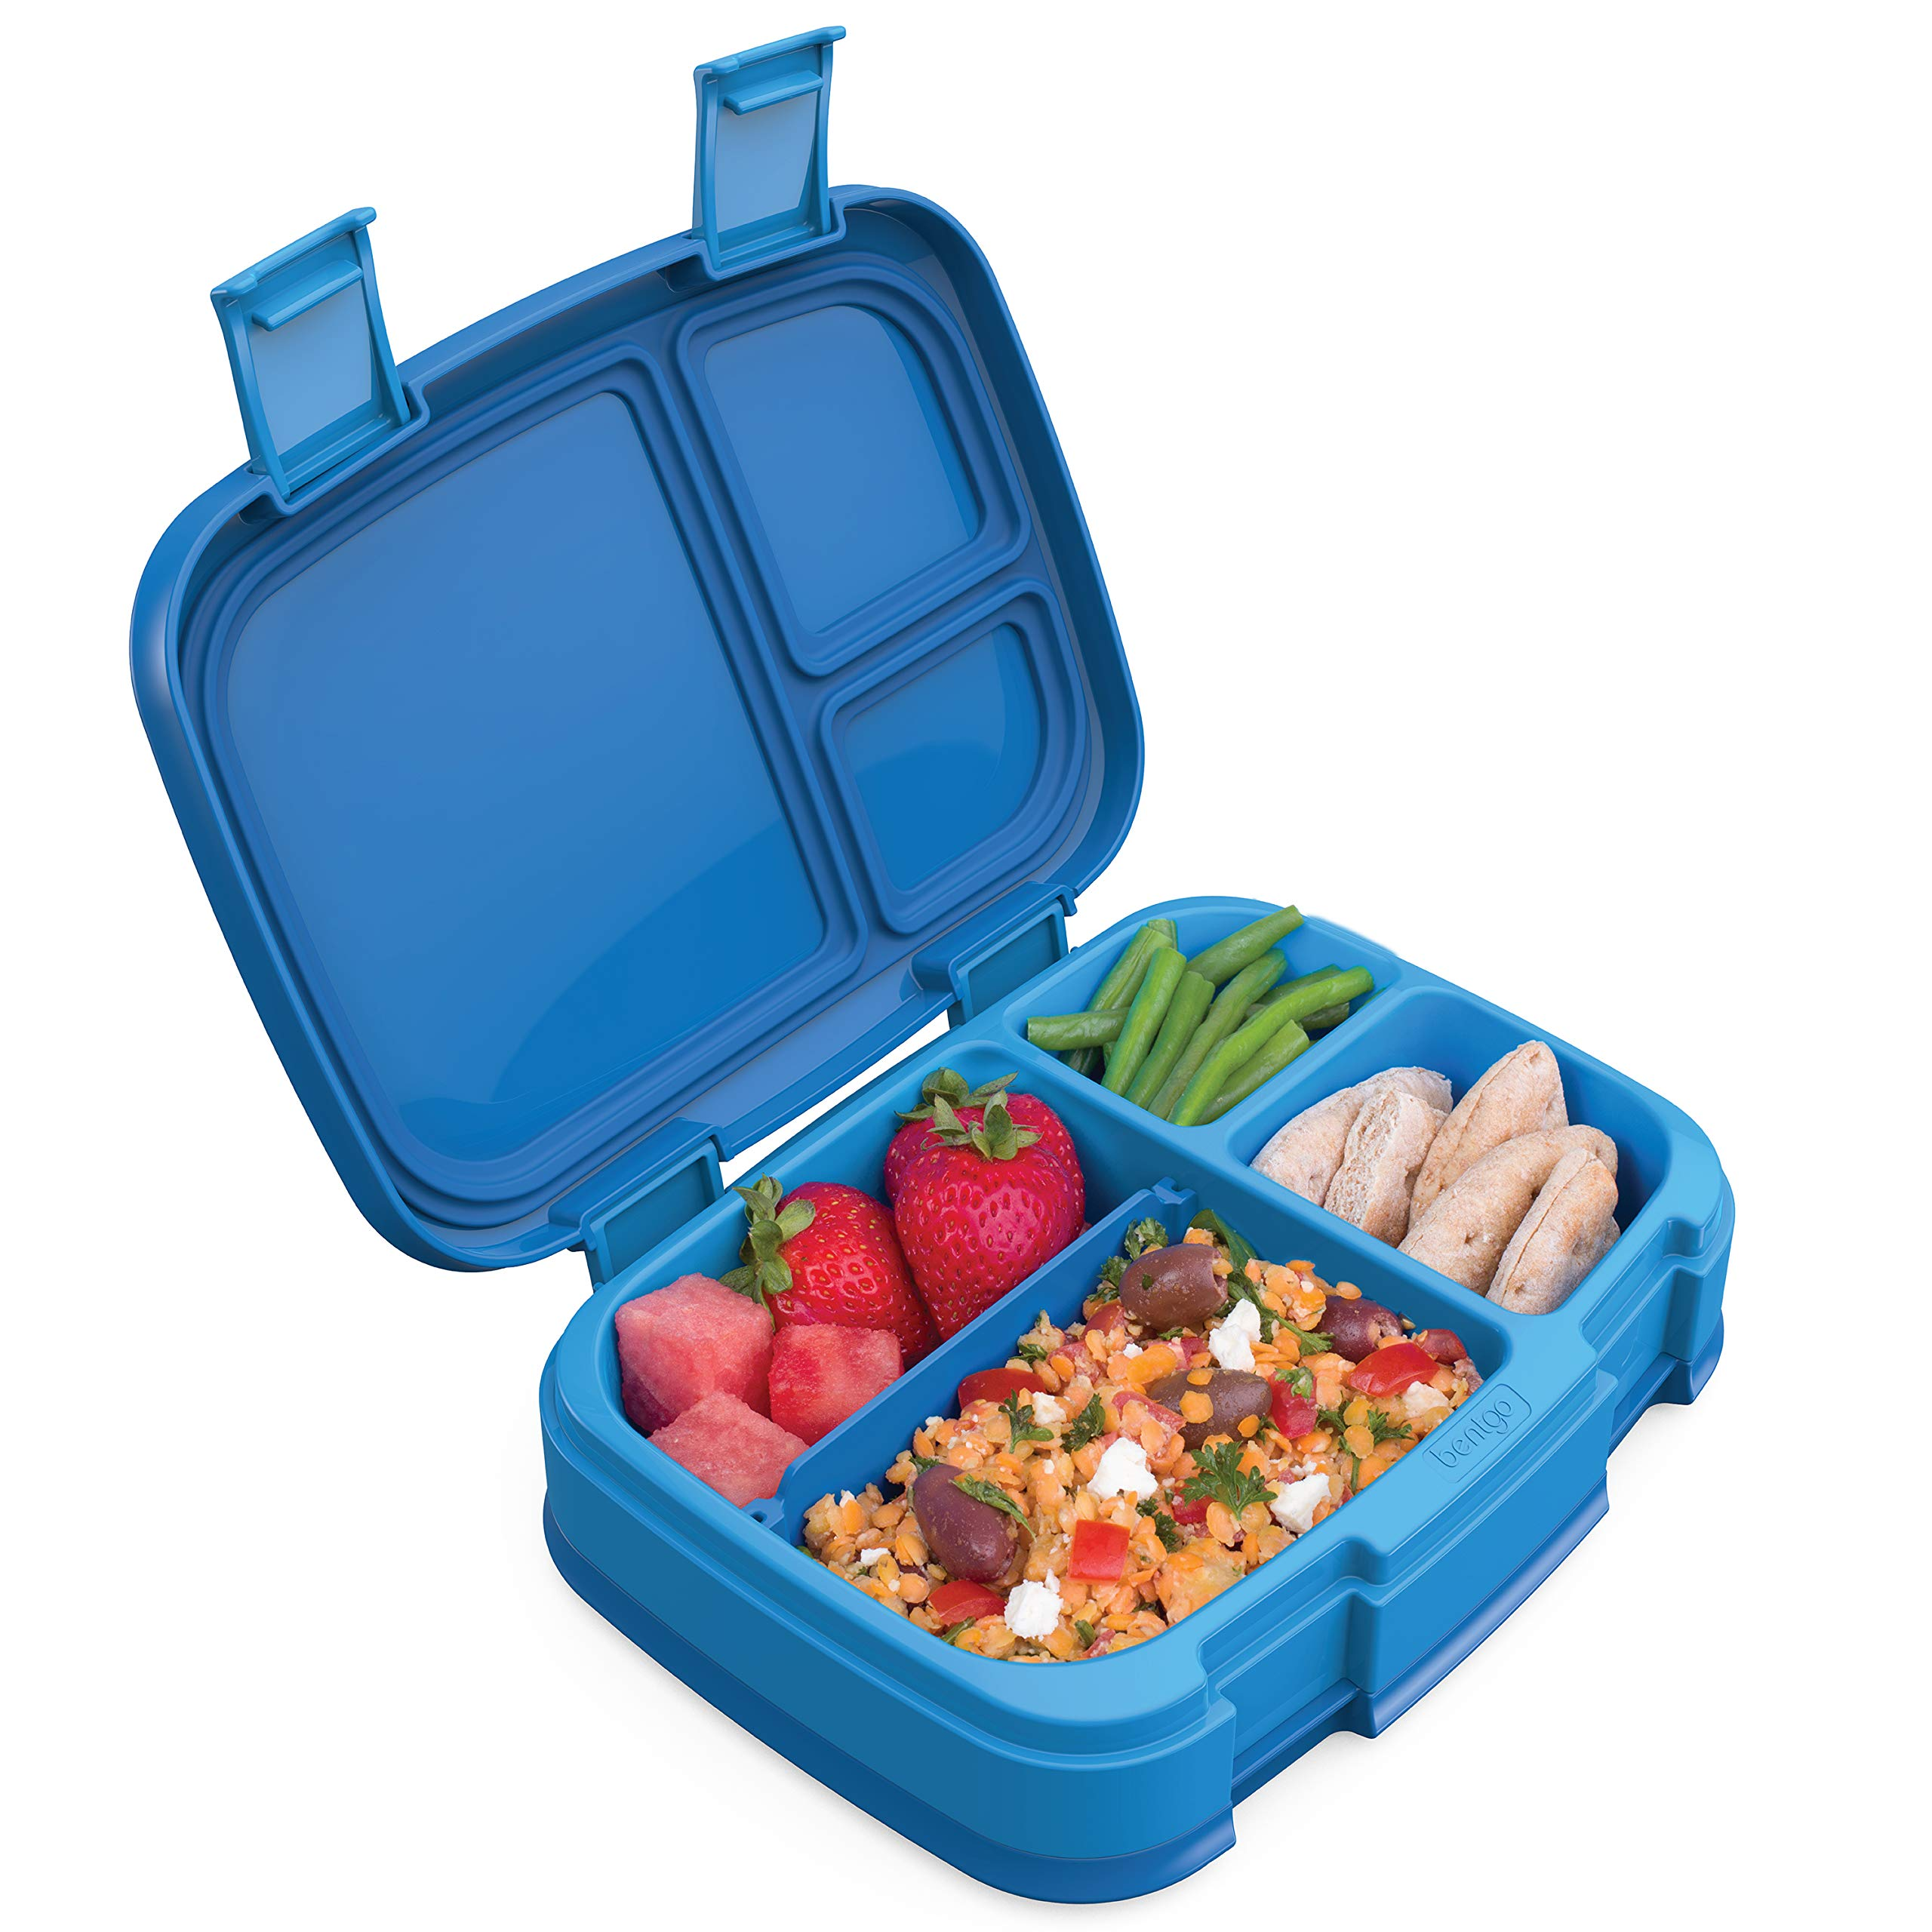 Bentgo Fresh (Blue) - New & Improved Leak-Proof, Versatile 4-Compartment Bento-Style Lunch Box - Ideal for Portion-Control and Balanced Eating On-The-Go - BPA-Free and Food-Safe Materials by Bentgo